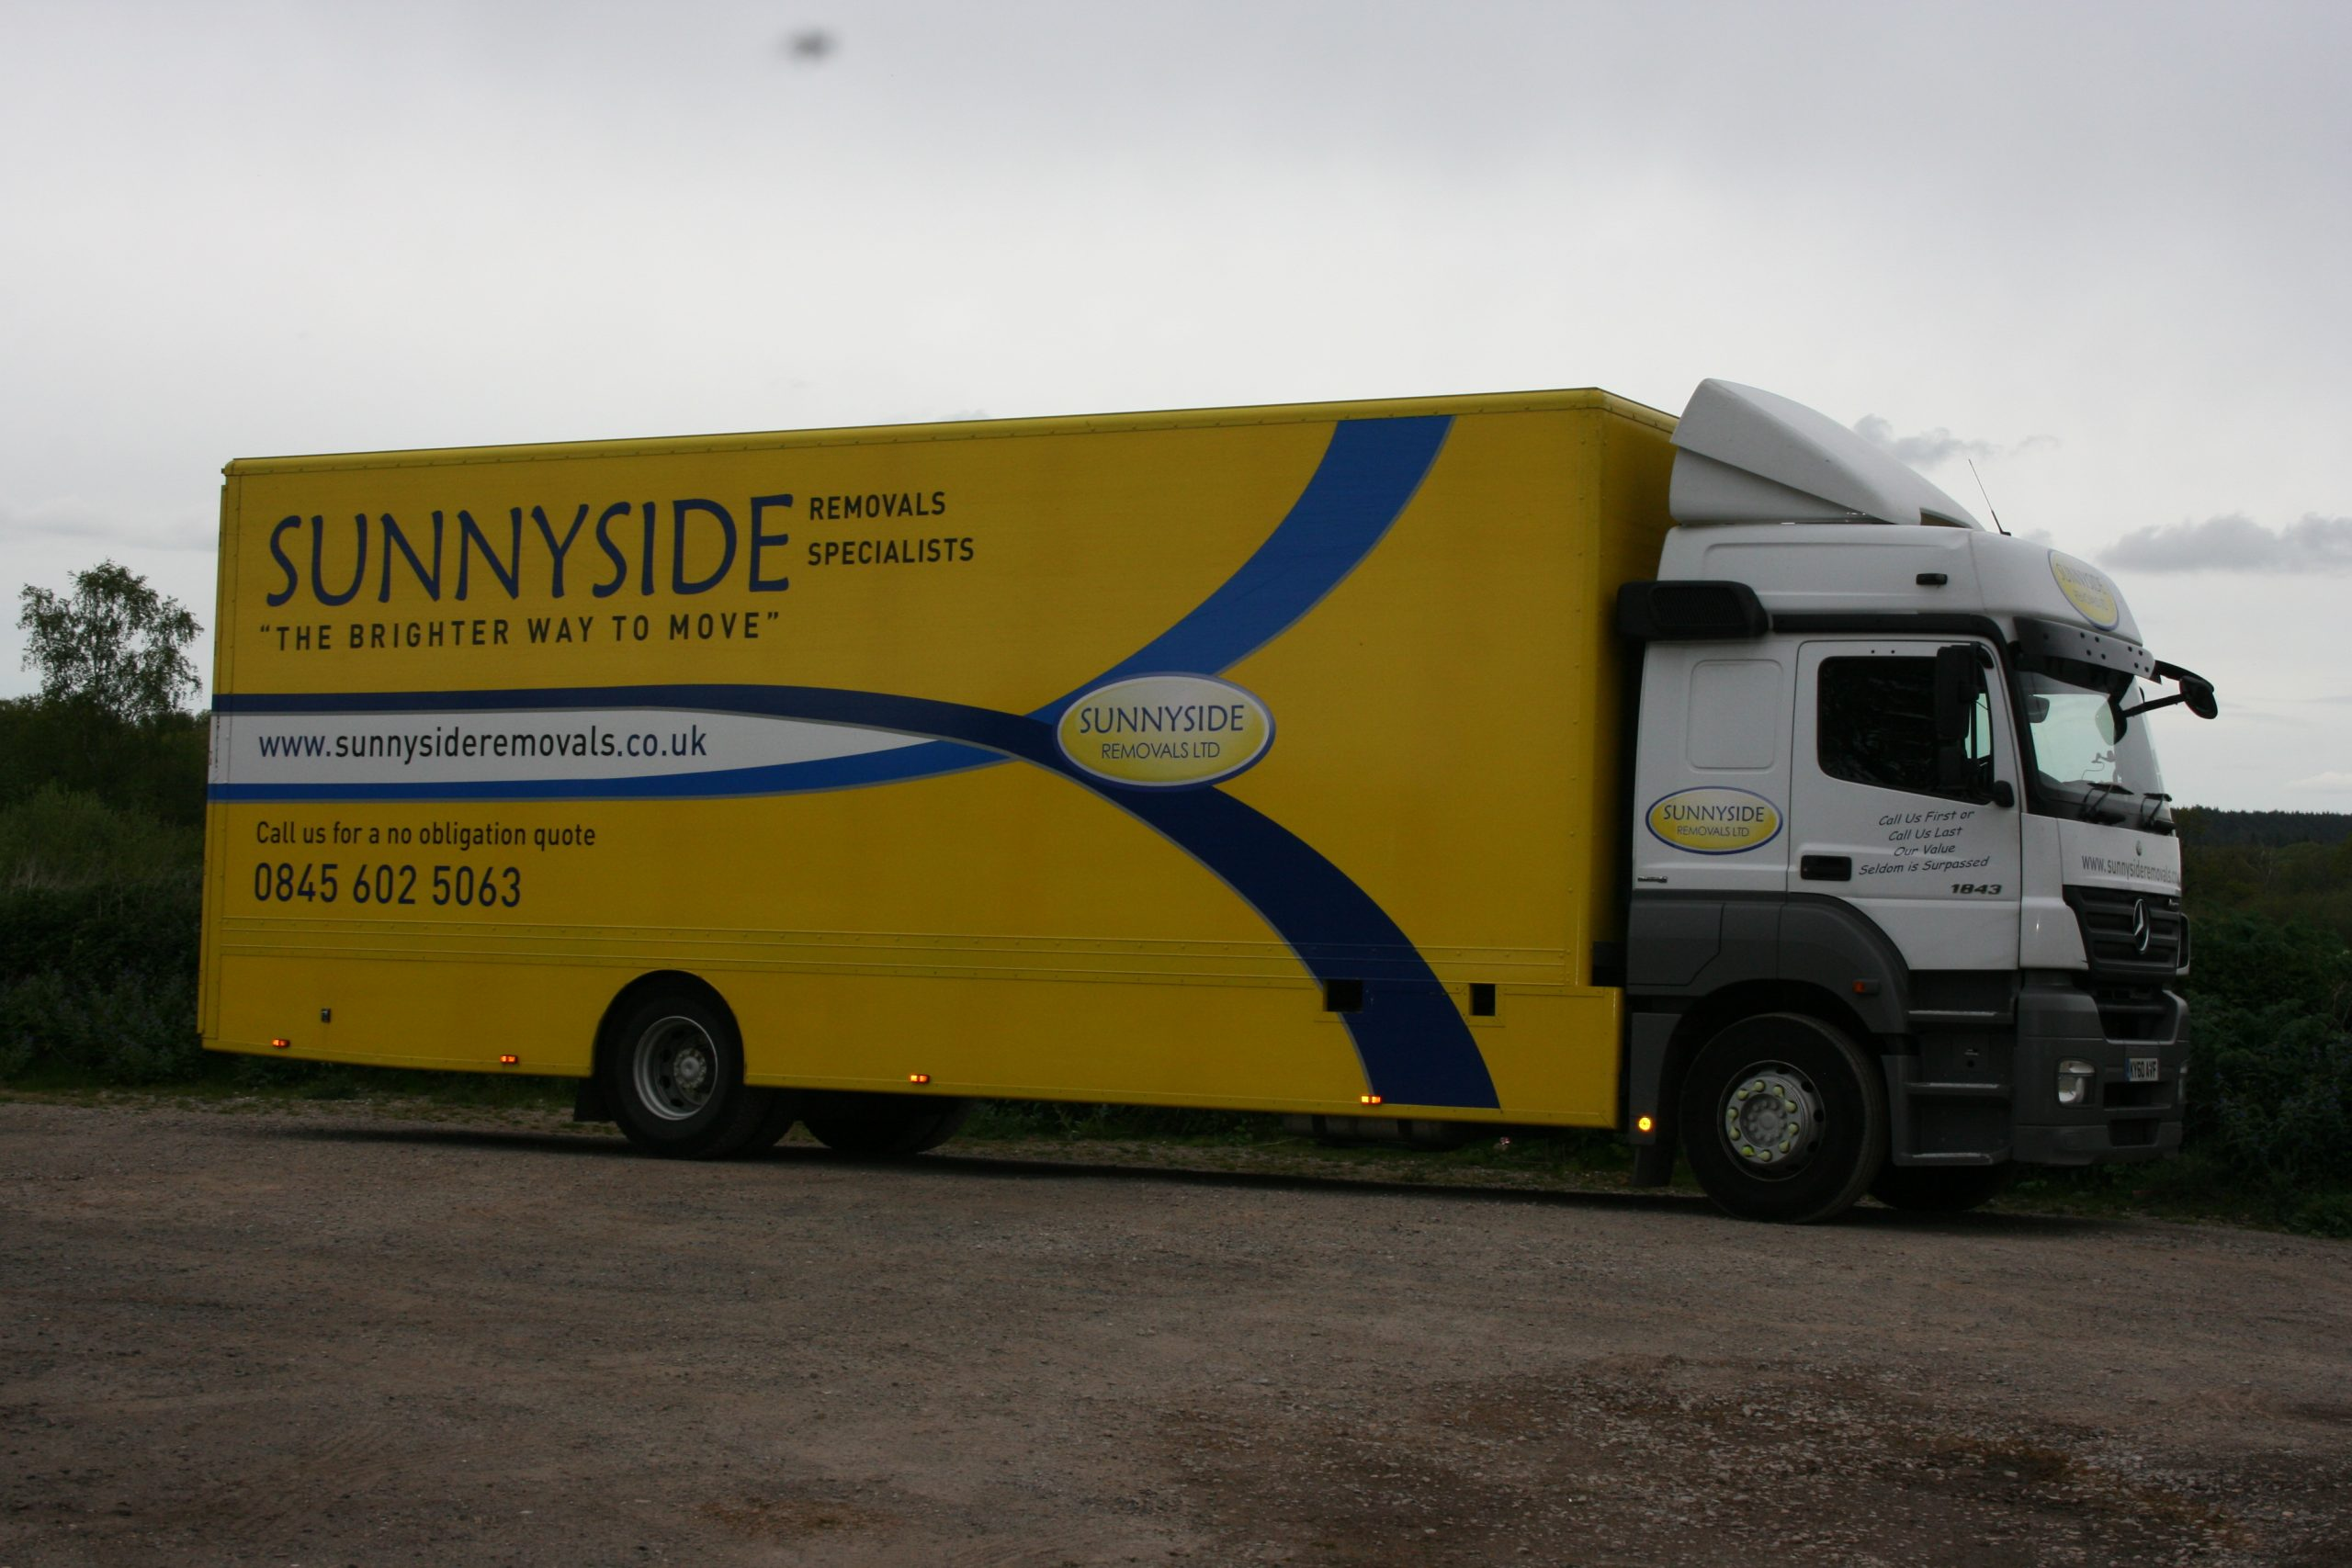 sunnyside removals vehicle